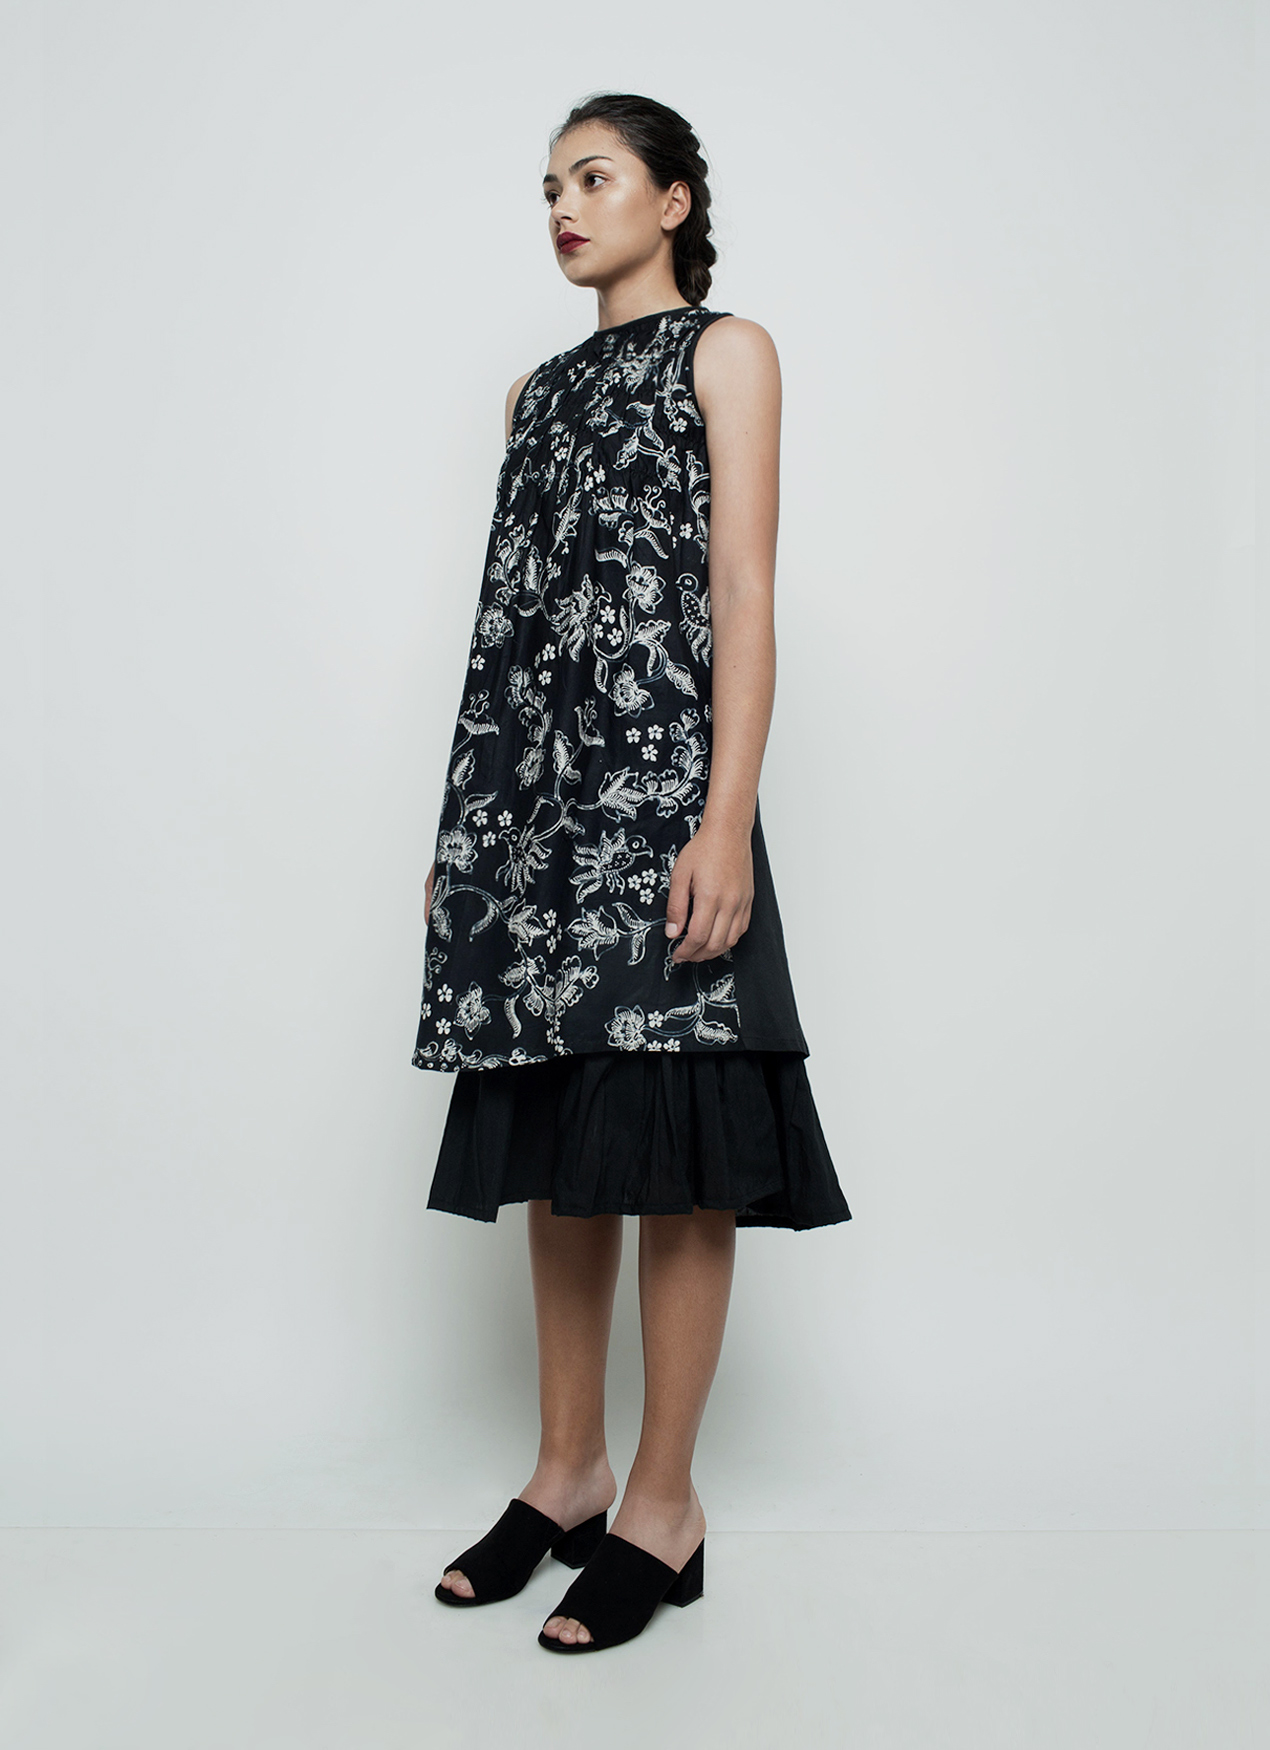 Oemah Etnik Black Rumi Batik Dress